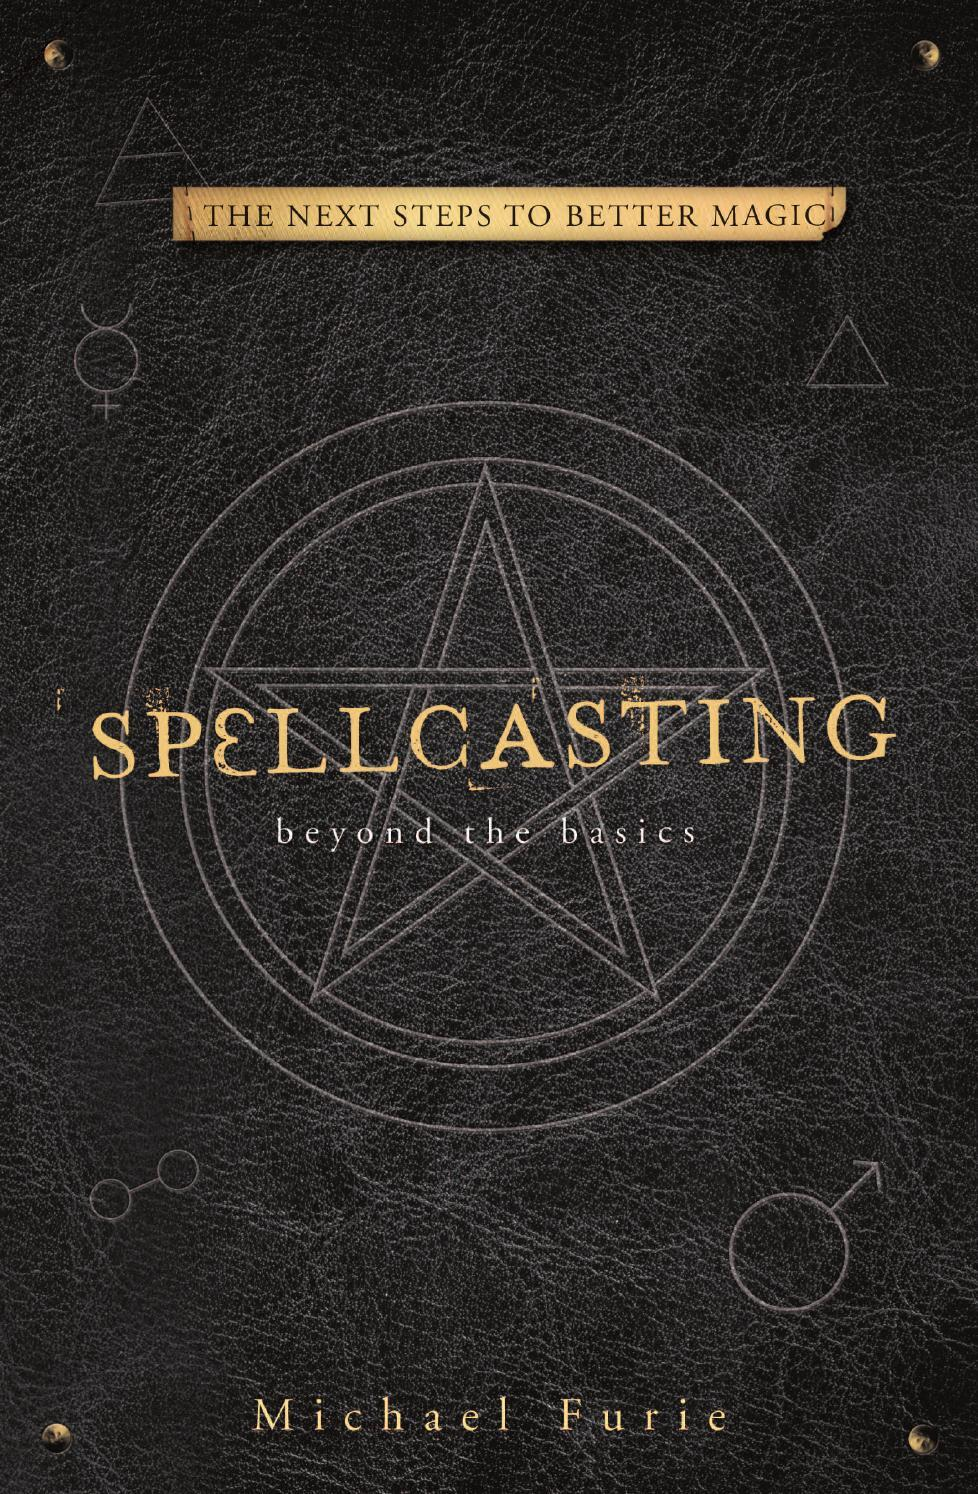 Spellcasting Beyond the Basics (Michael Furie)